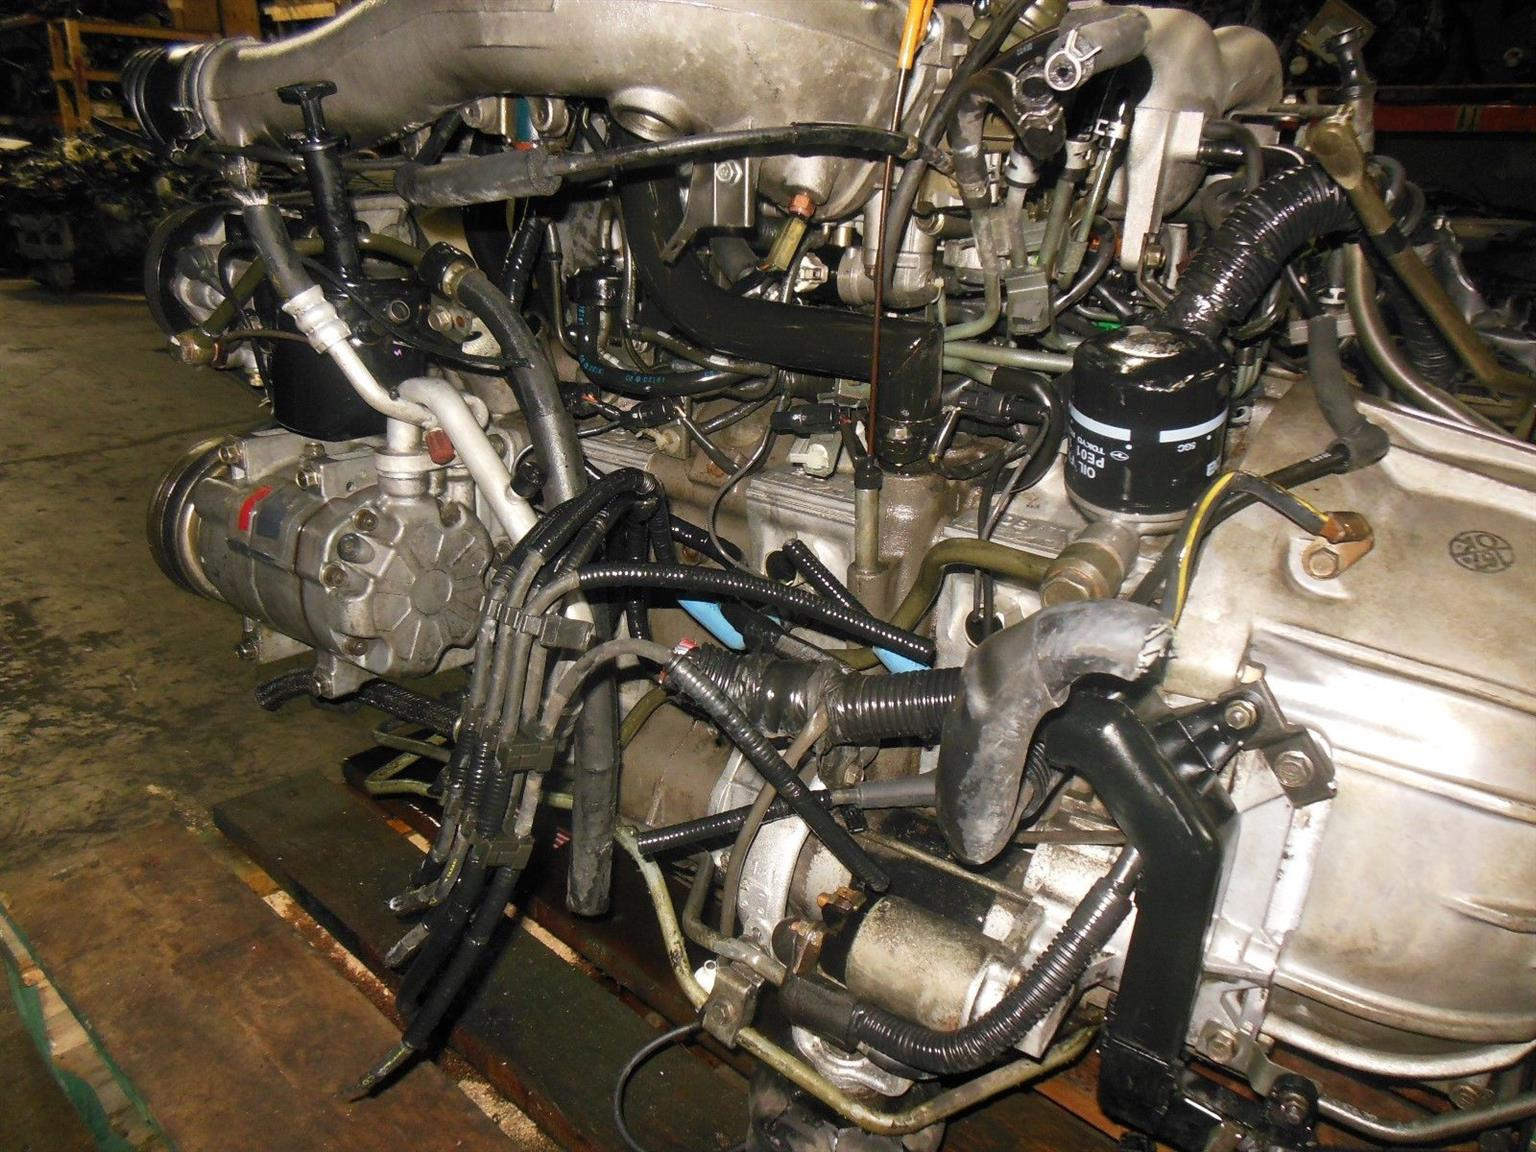 Jdm Mazda 20b 3 Rotor Engine Cosmo Trans Type C And D Junk Mail Wiring Harness Scam